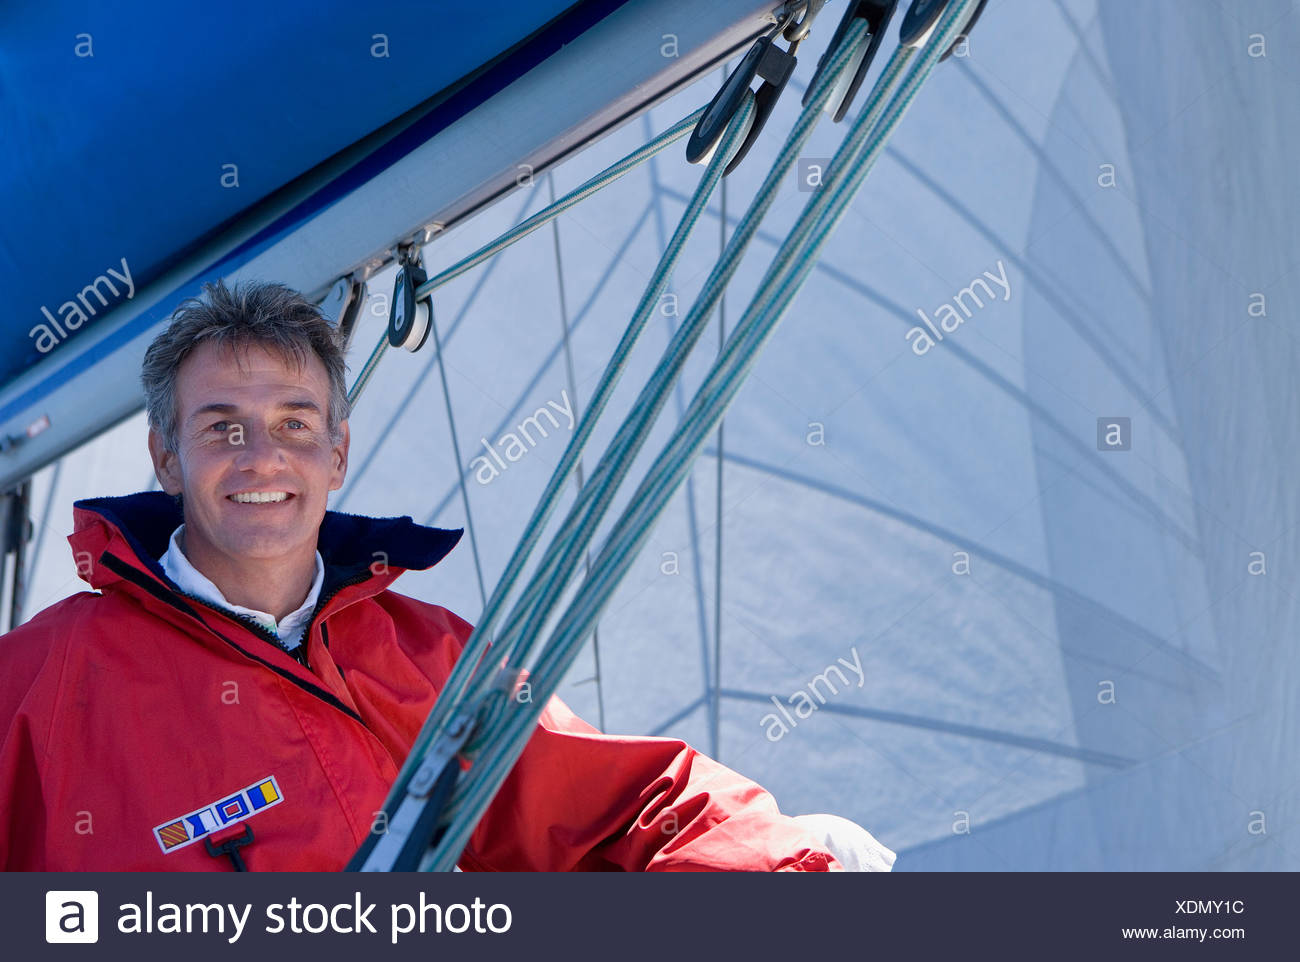 Man in red jacket sitting on deck of sailing boat below sail, smiling, portrait, low angle view - Stock Image